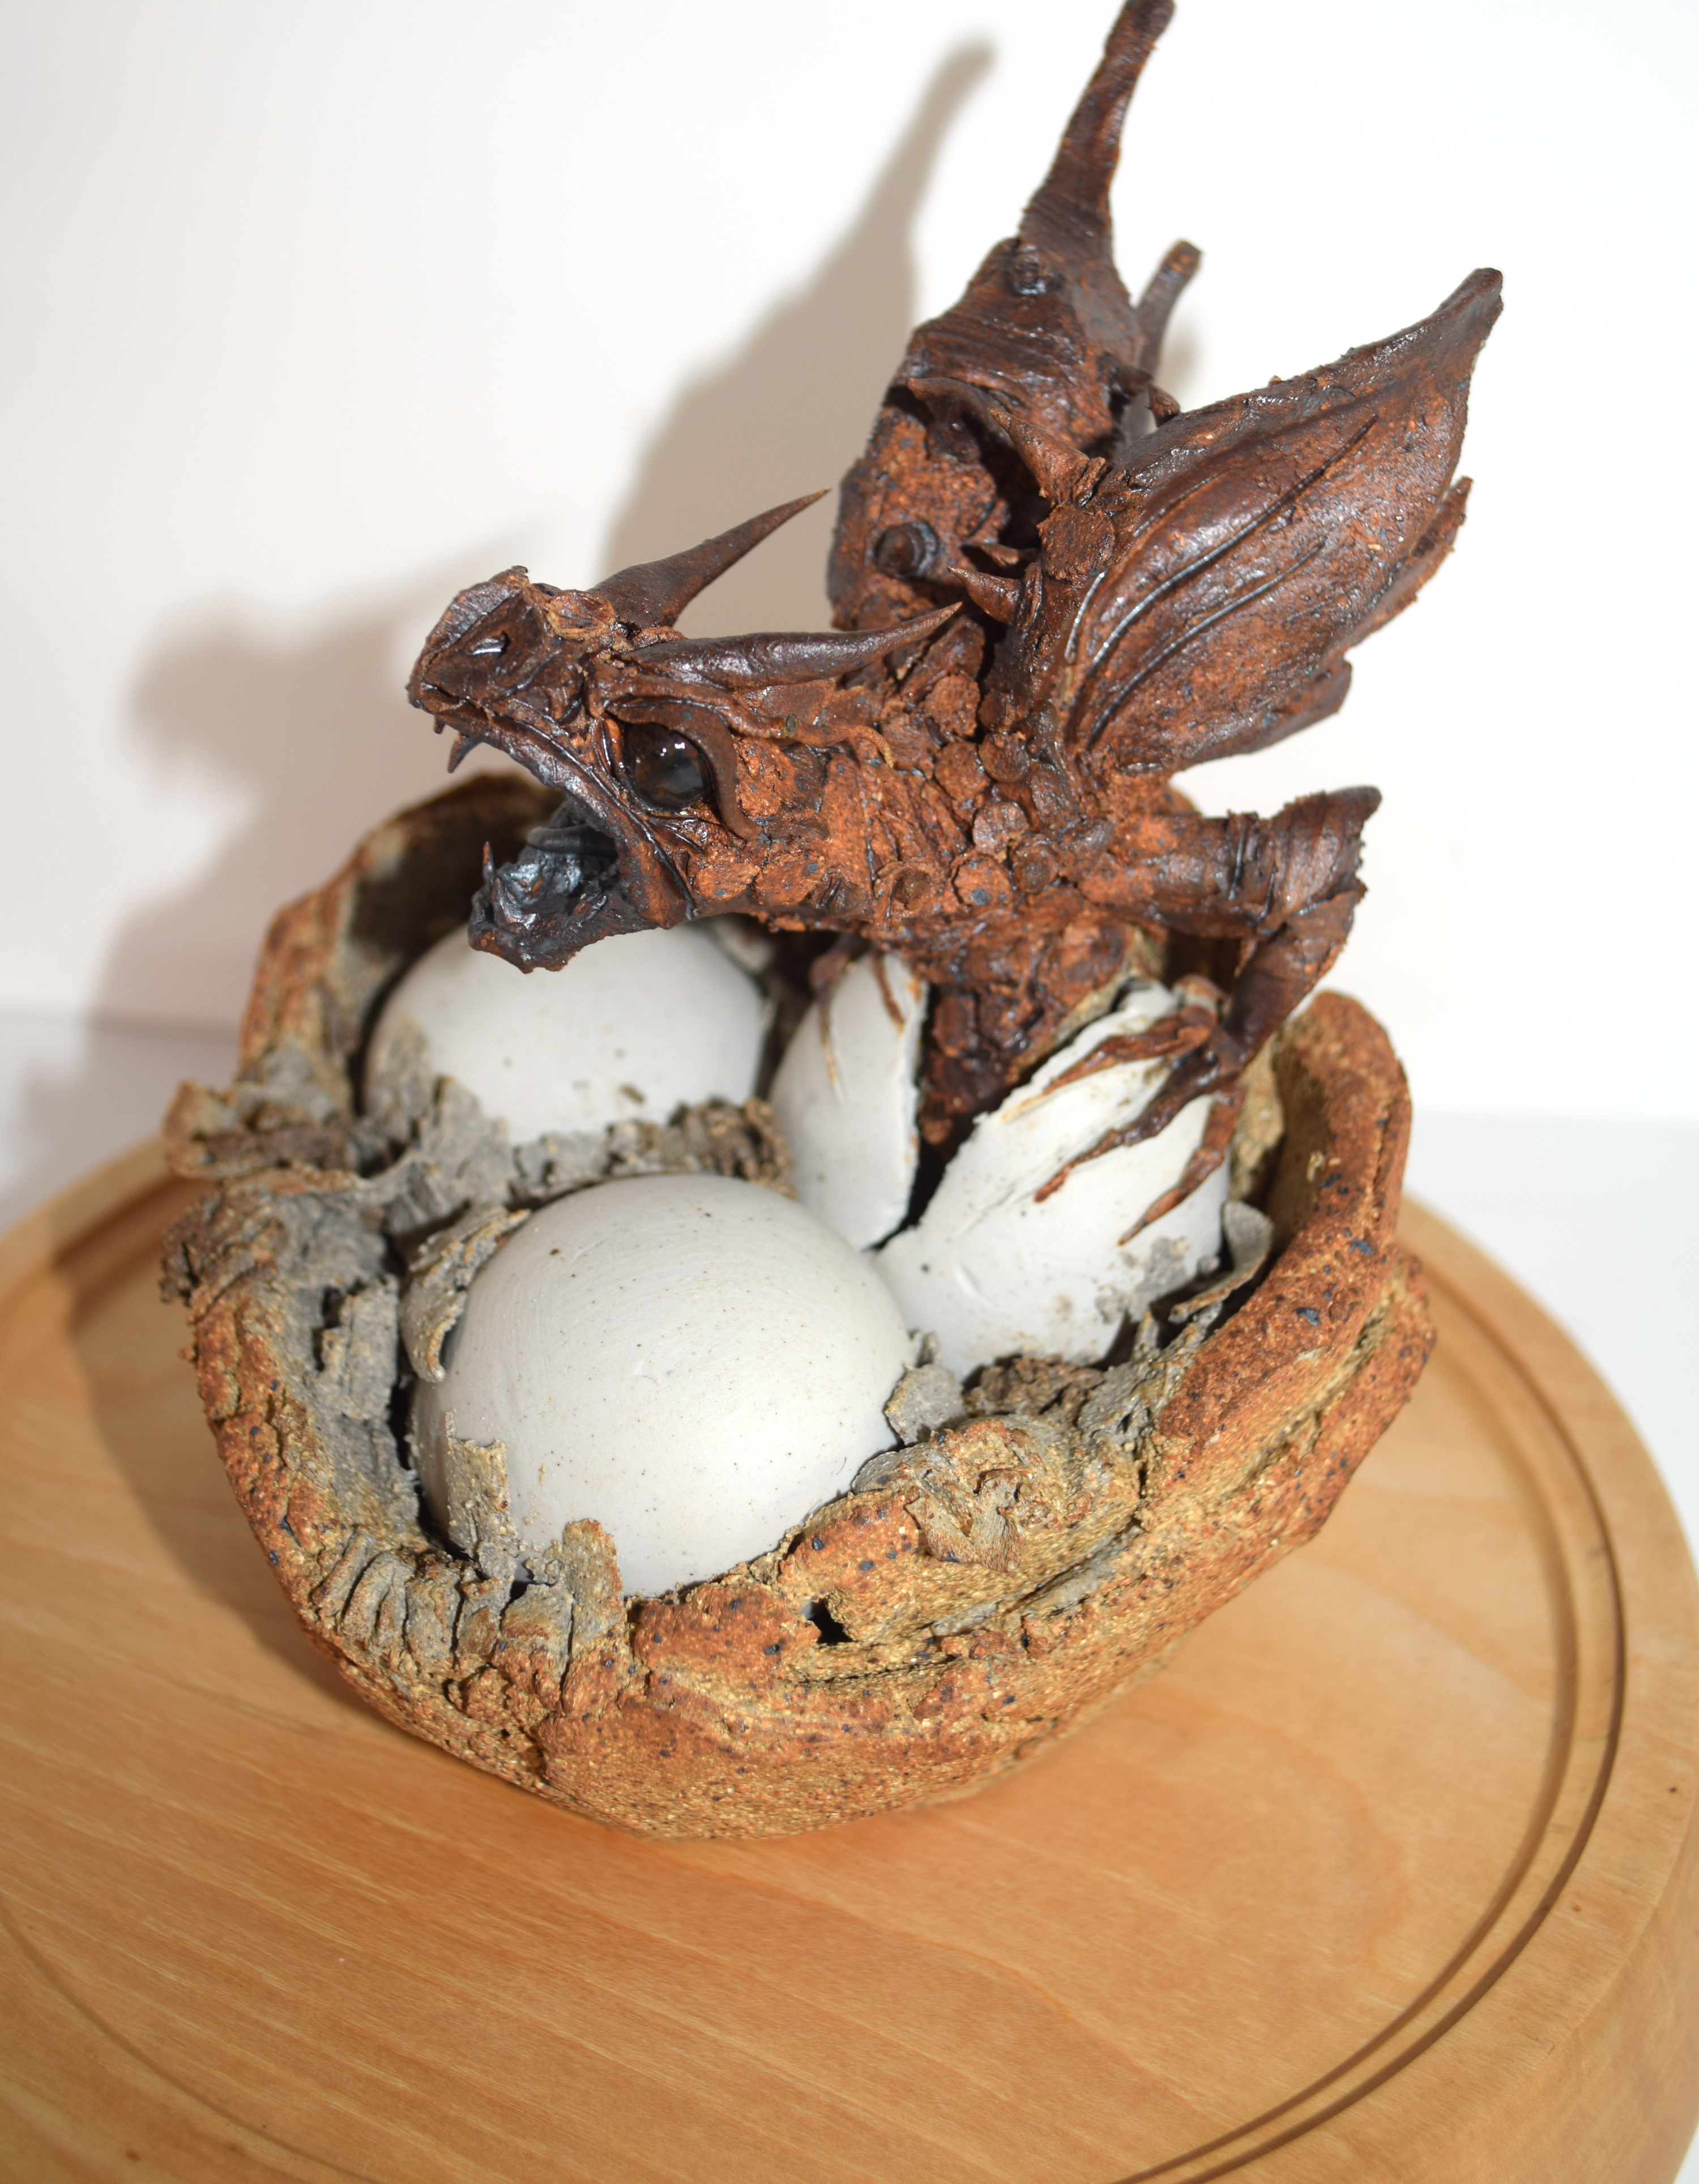 Ceramic sculpture of a baby dragon coming out of an egg, the sculpture under a glass dome, 36cm - Image 2 of 2